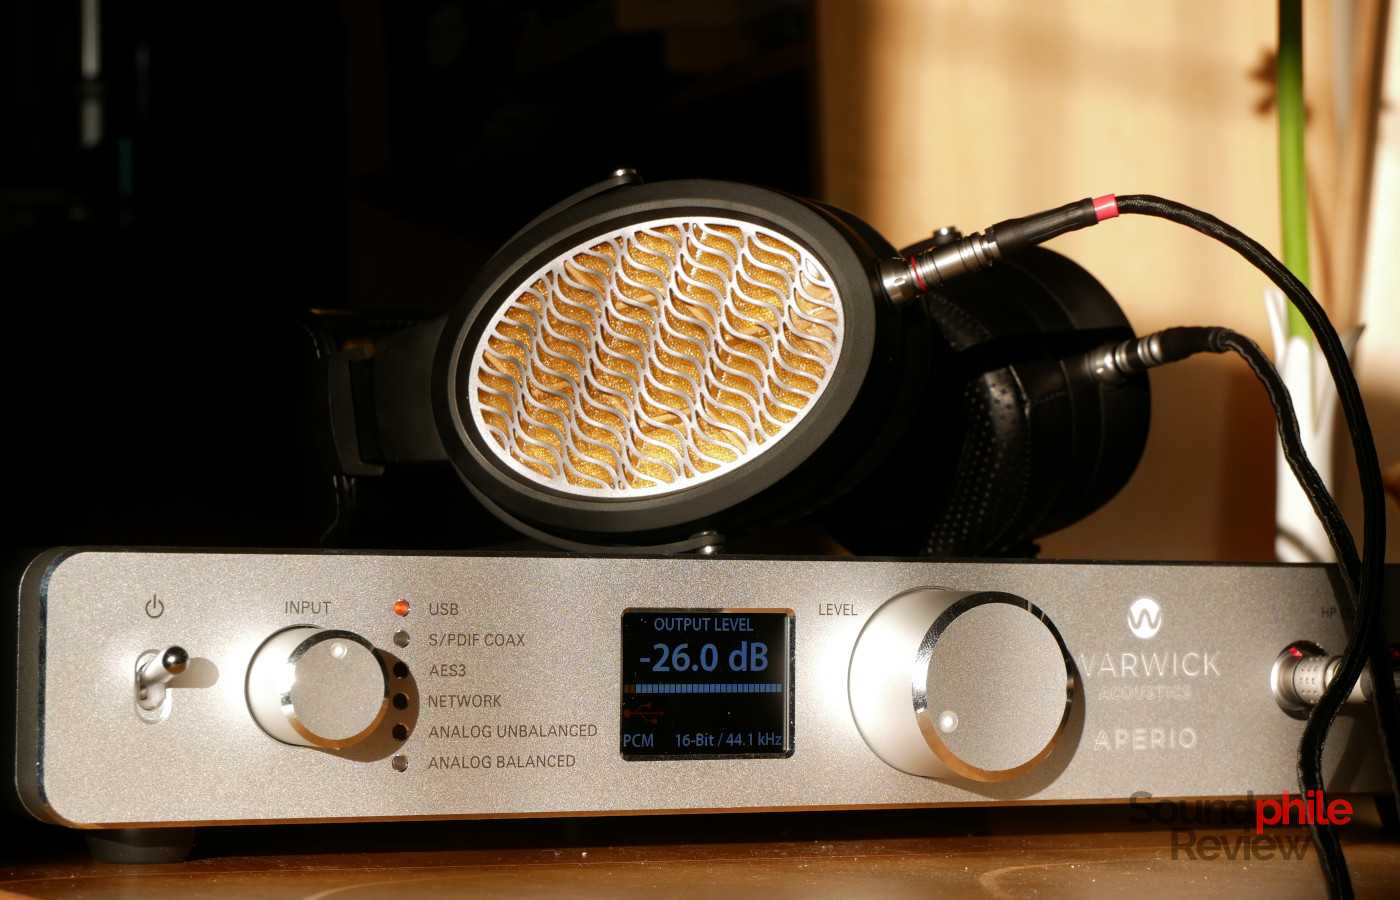 Warwich Acoustics APERIO review